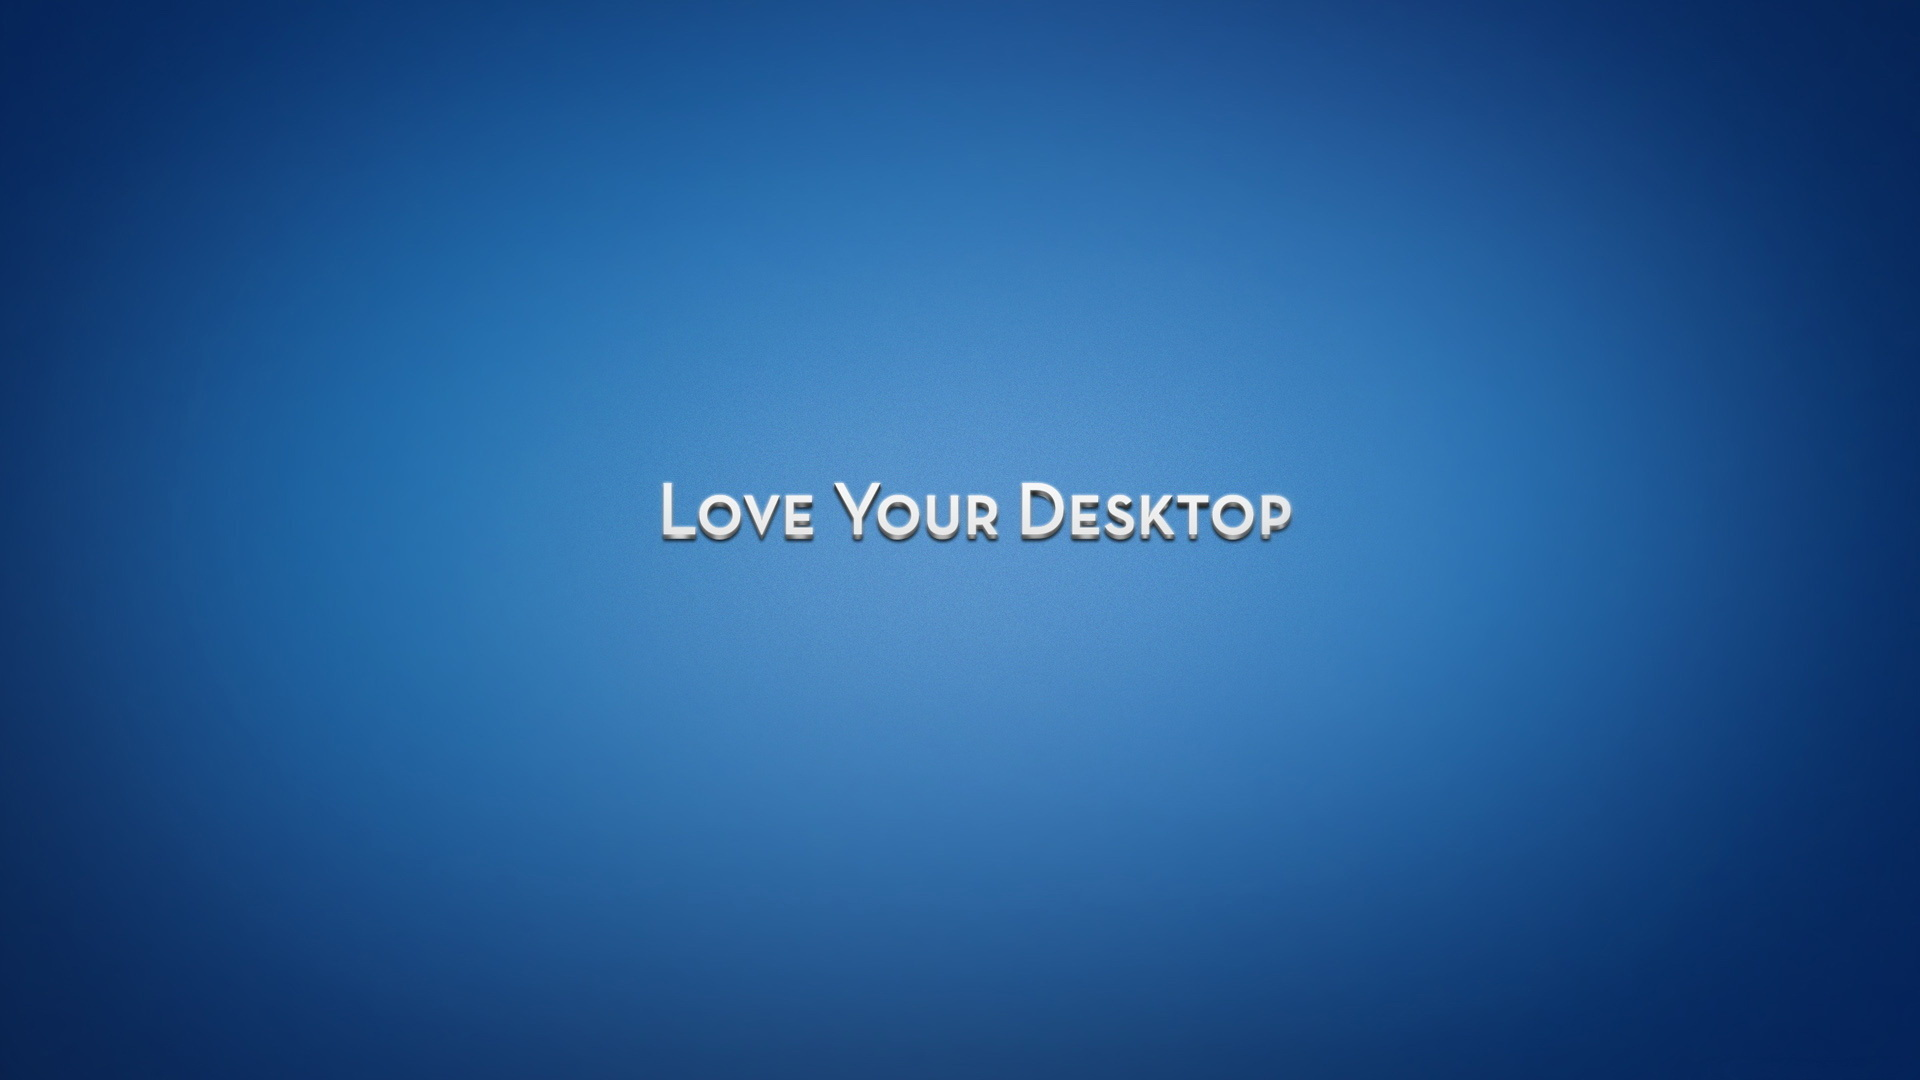 desktop 1080p hd love - photo #9